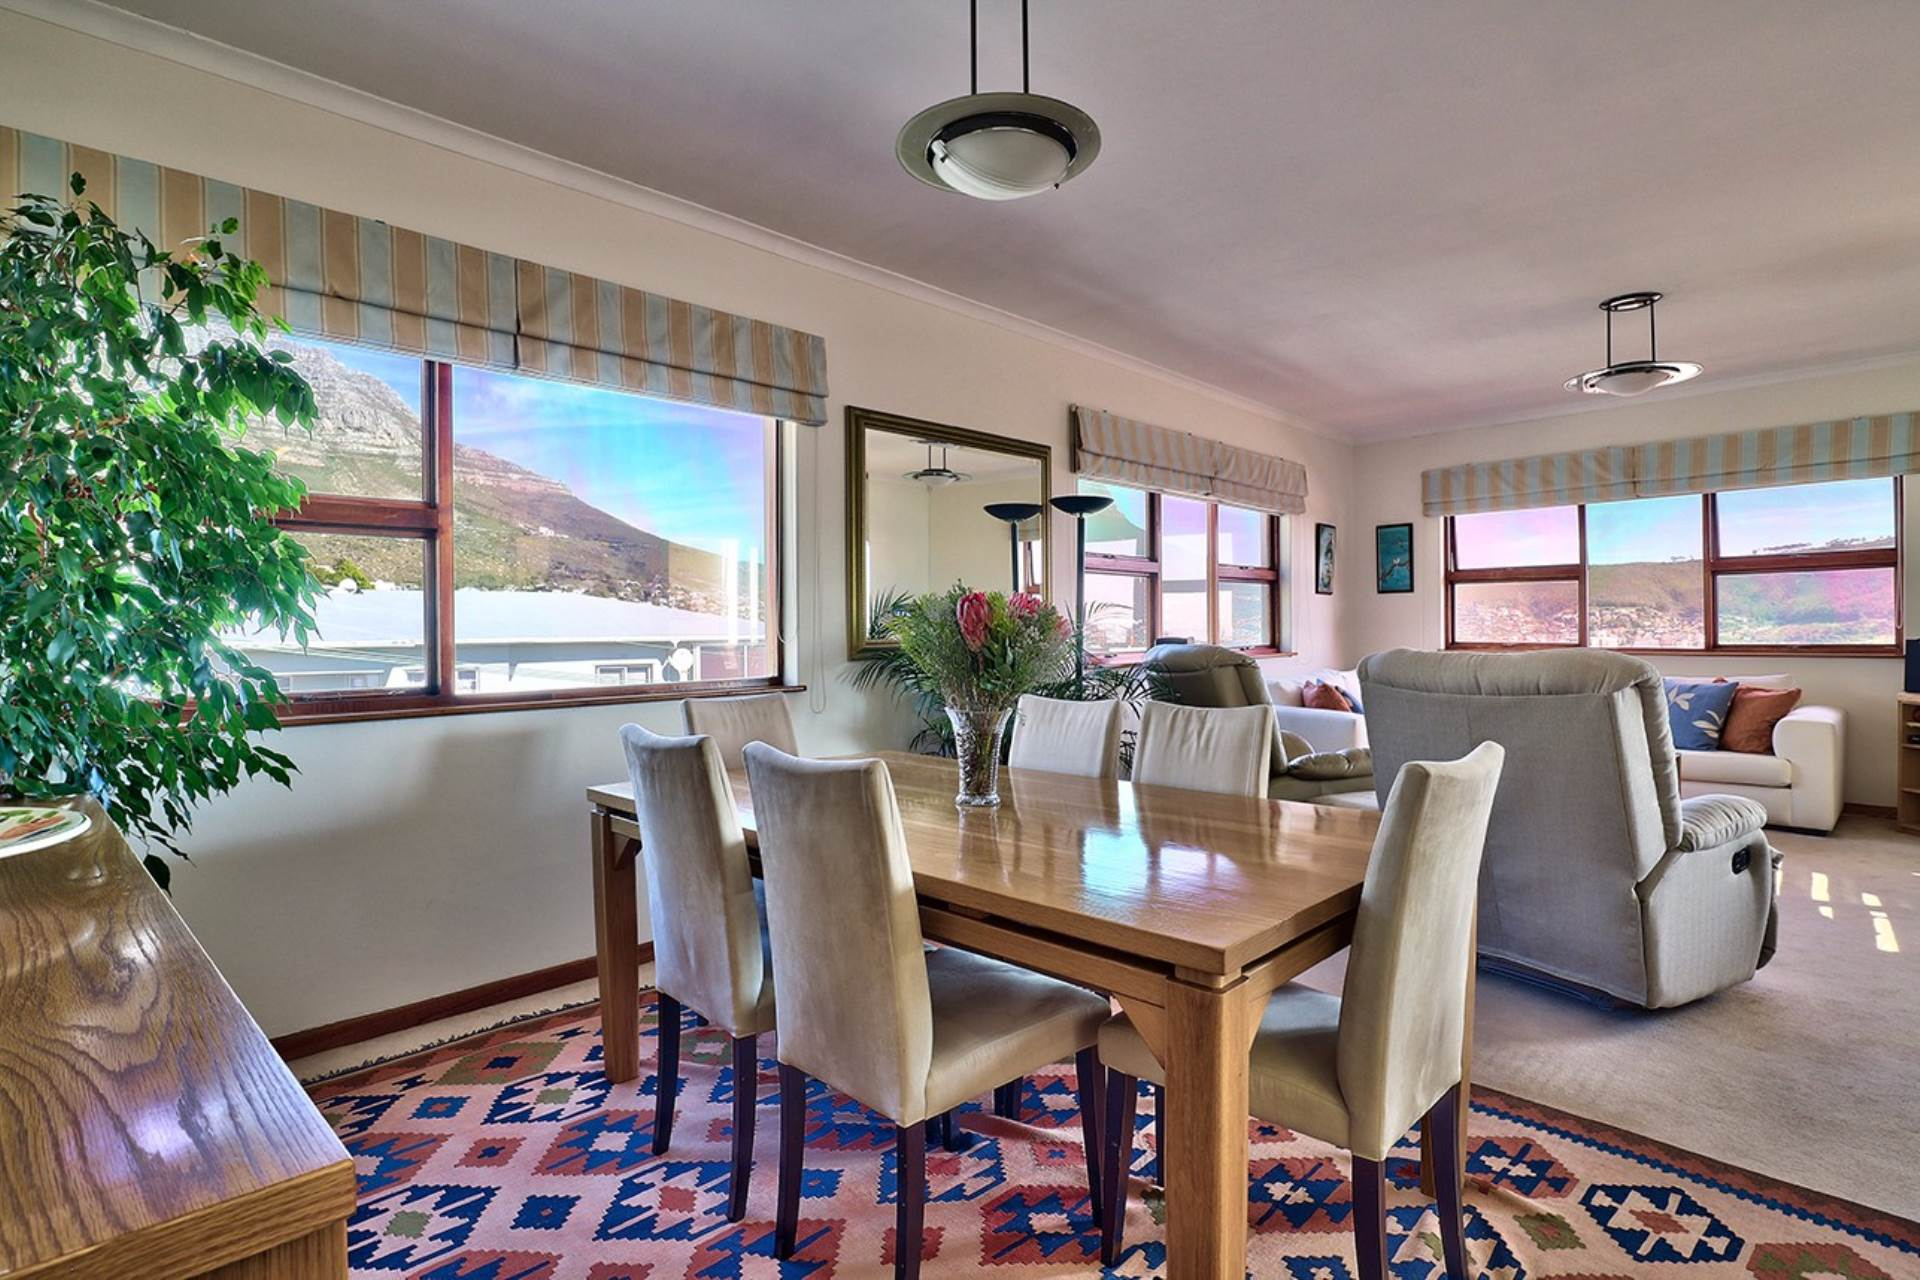 Vredehoek property for sale. Ref No: 13534483. Picture no 5